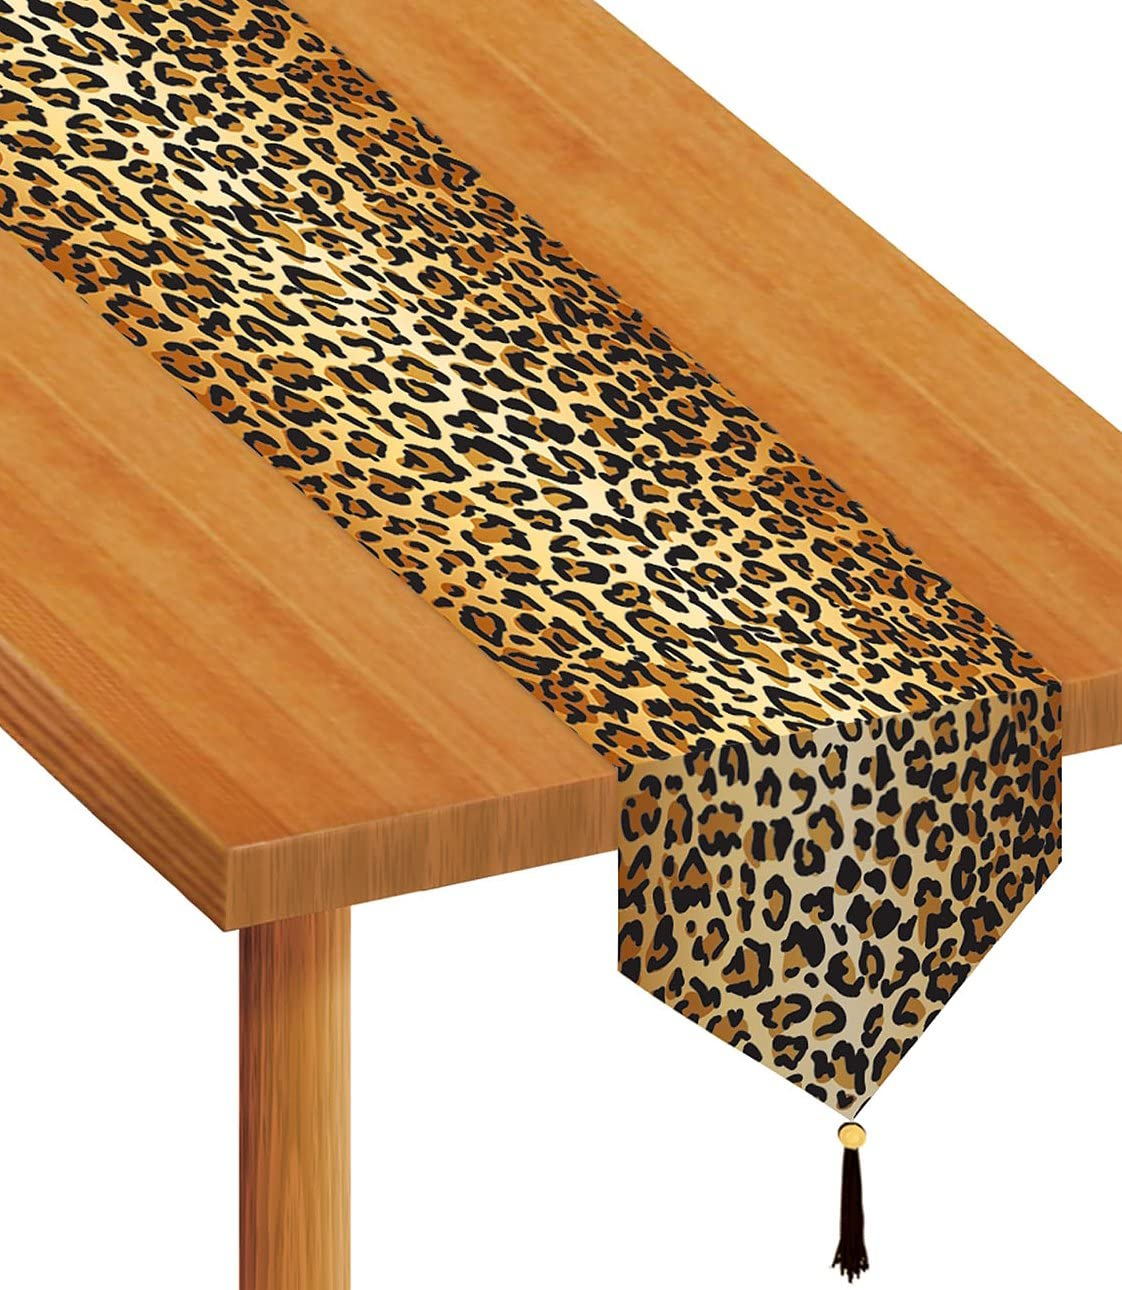 Beistle 57848 Printed Leopard Print Table Runner, 11-Inch by 6-Feet